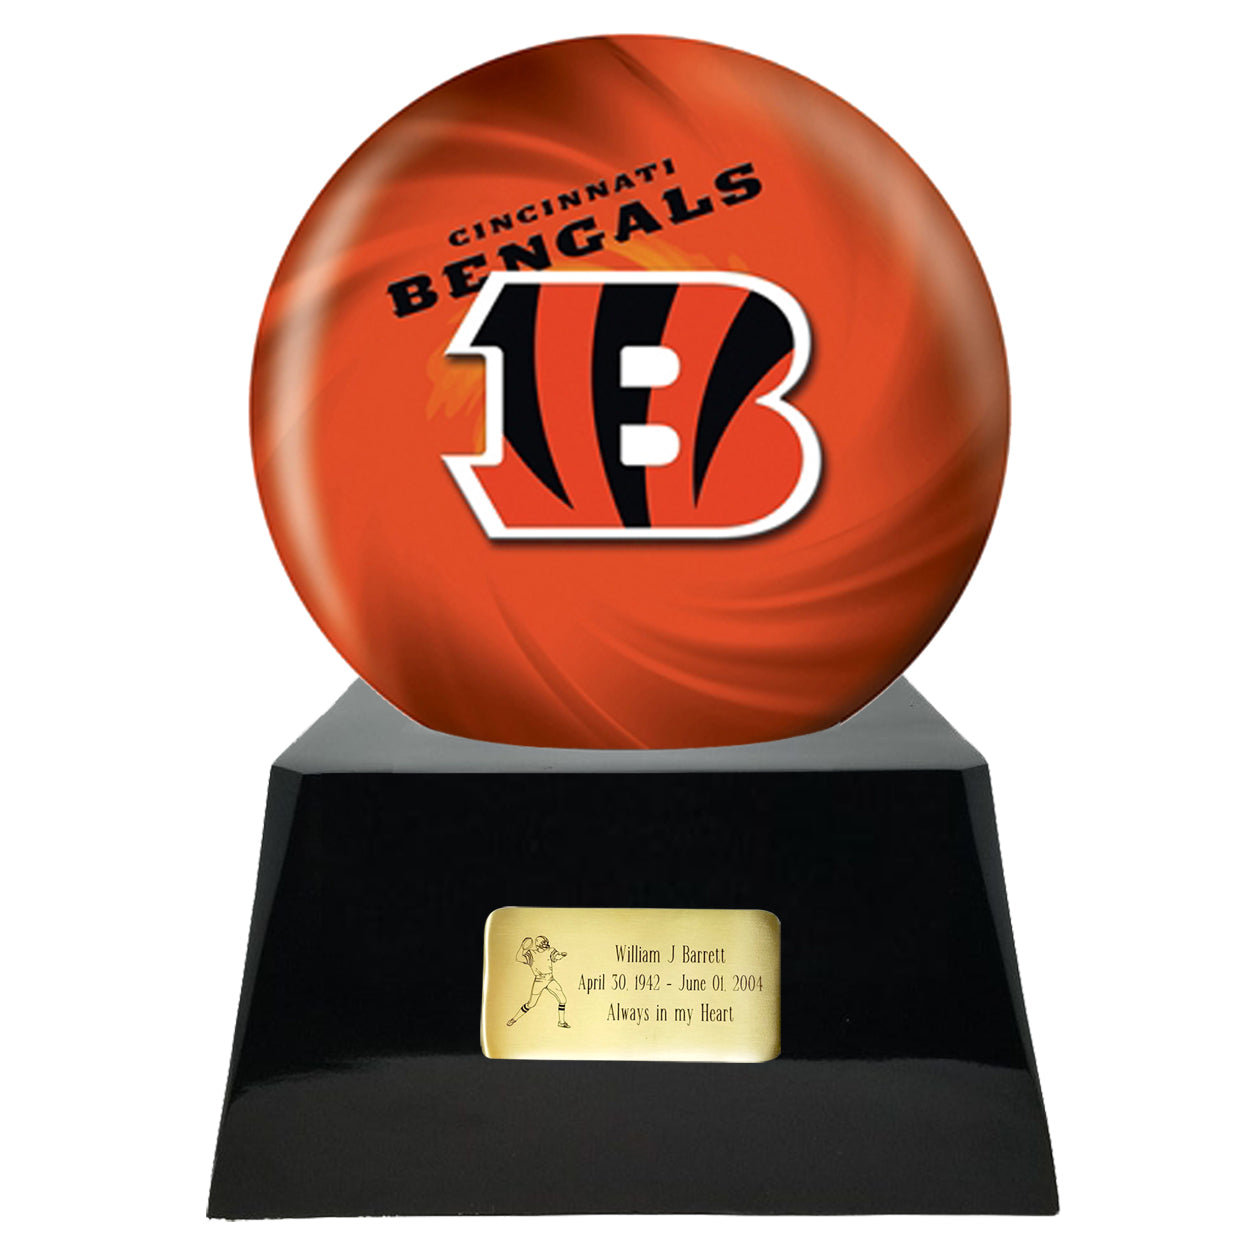 Football Team Cremation Urn - Football Cremation Urn and Cincinnati Bengals Ball Decor with Custom Metal Plaque